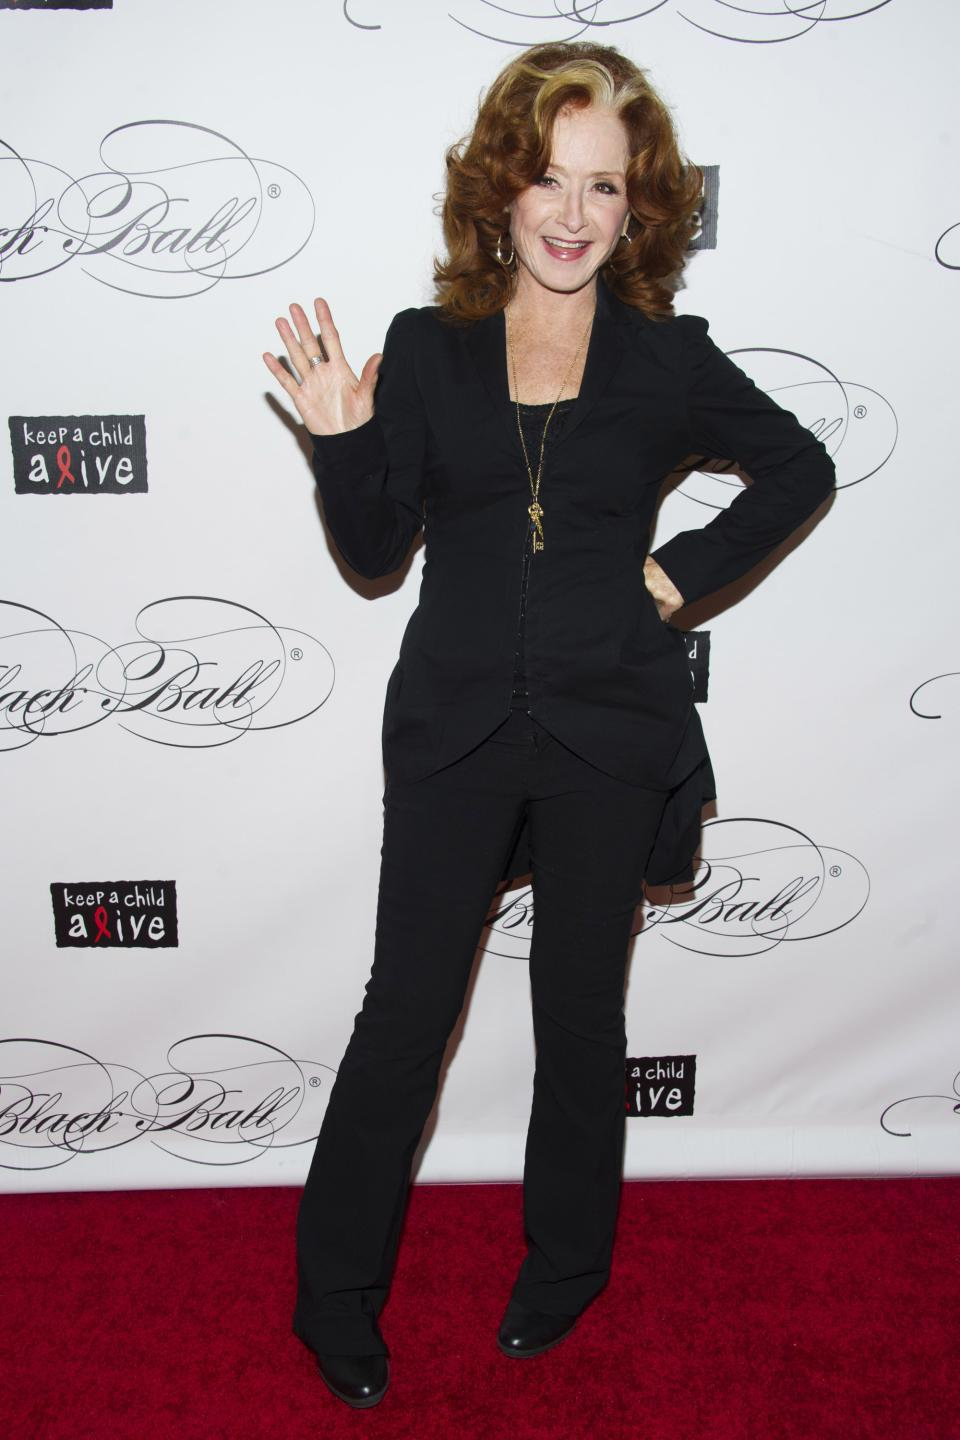 Bonnie Raitt attends Keep a Child Alive's ninth annual Black Ball on Thursday, Dec. 6, 2012 in New York. (Photo by Charles Sykes/Invision/AP)